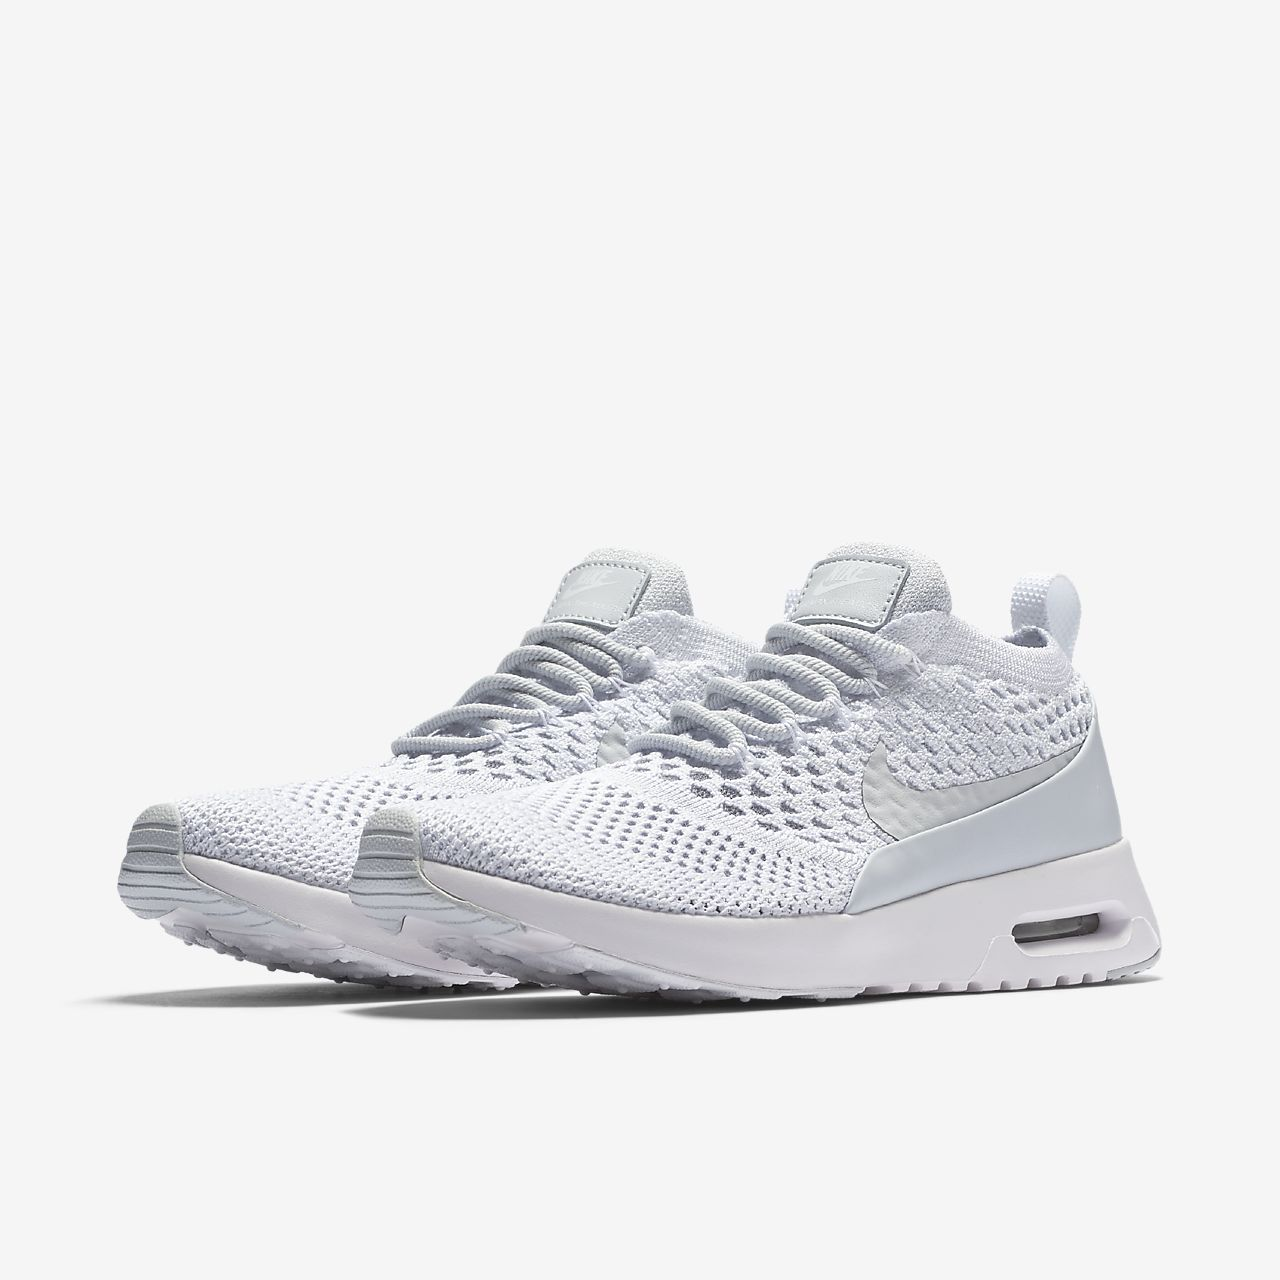 nikelab air max 1 ultra flyknit nz